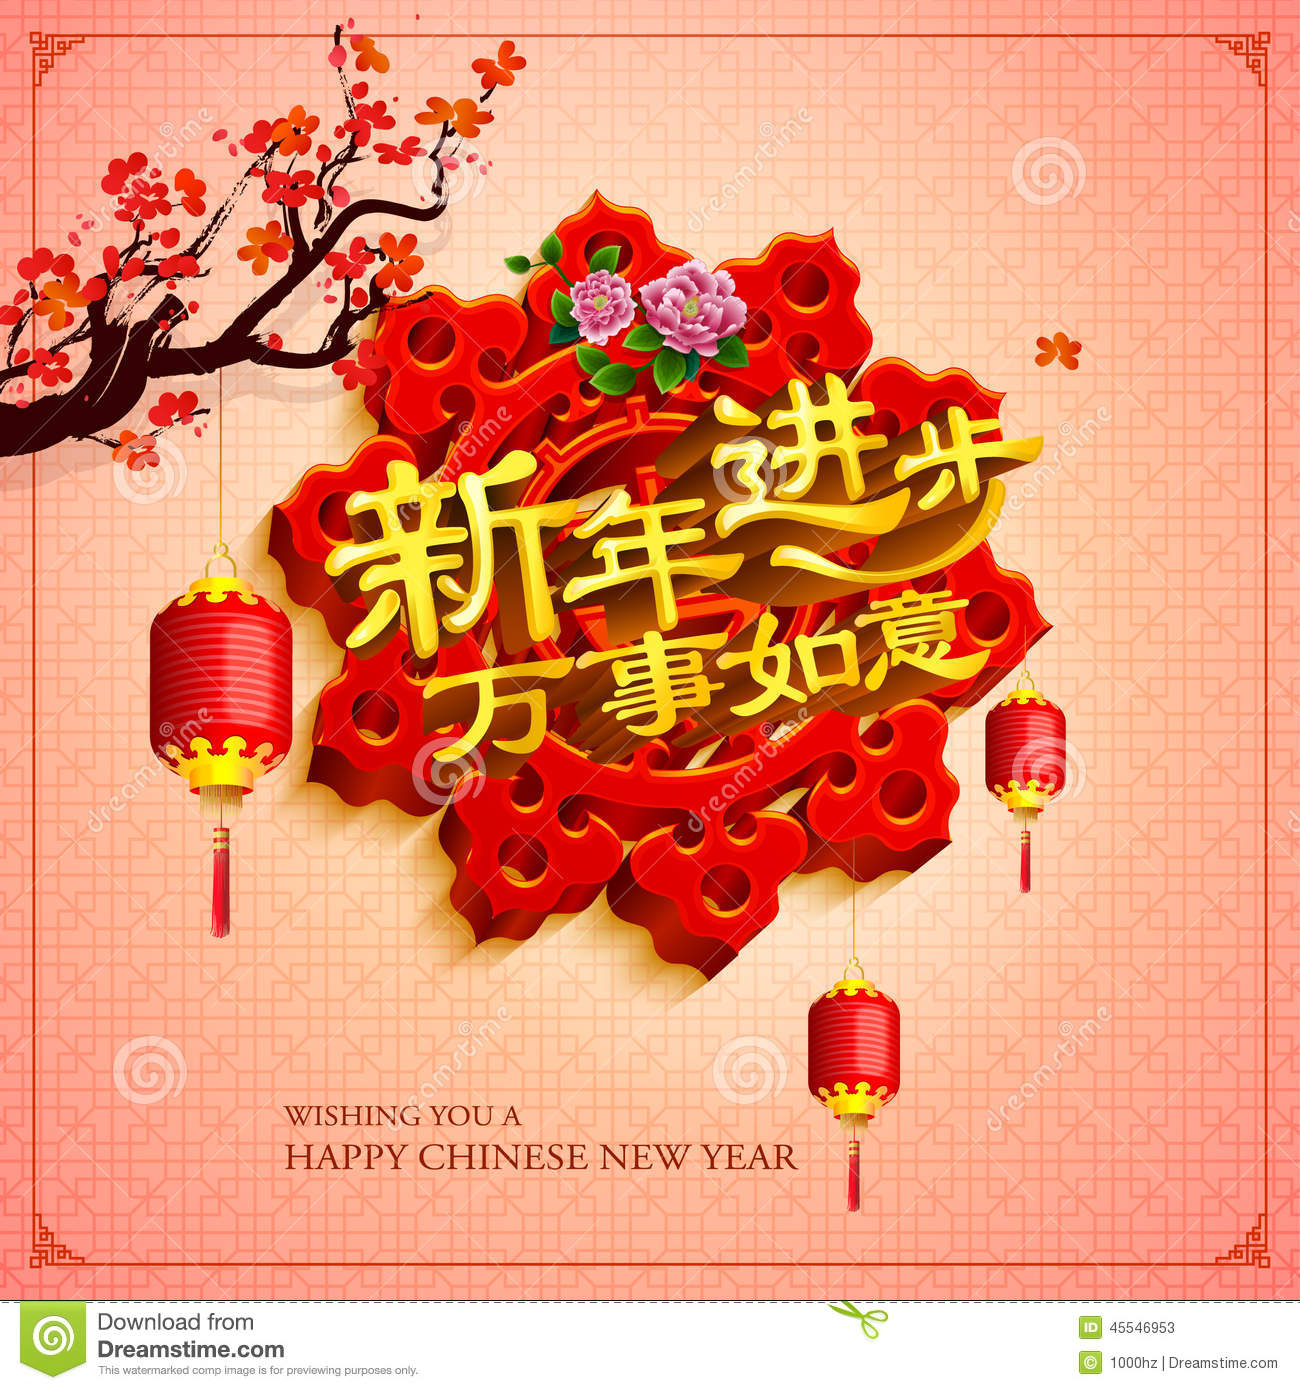 chinese new year graphic with greetings gong xi fa cai congratulations good fortune